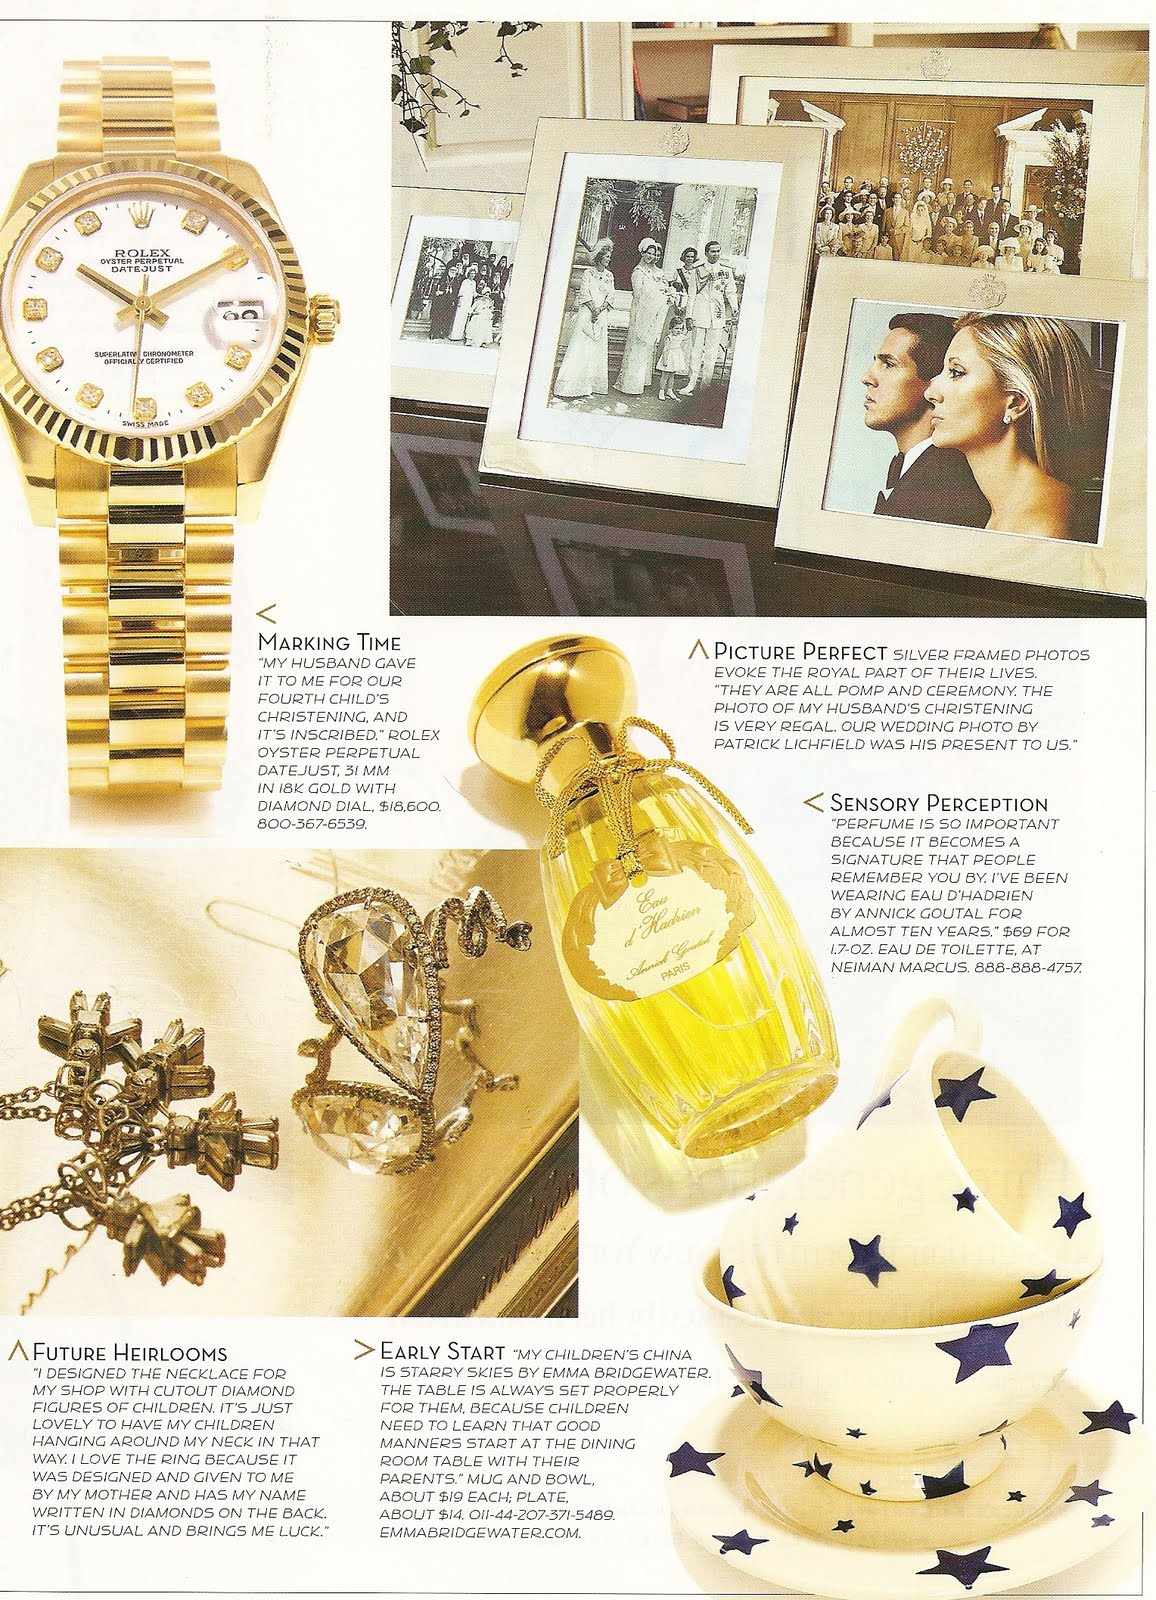 ... 2006 House U0026 Garden Magazine. Check Out The Photos Below For A Look  Into Her Elegant Family Home. Click Here For More Info On The Prince And  Princess ...